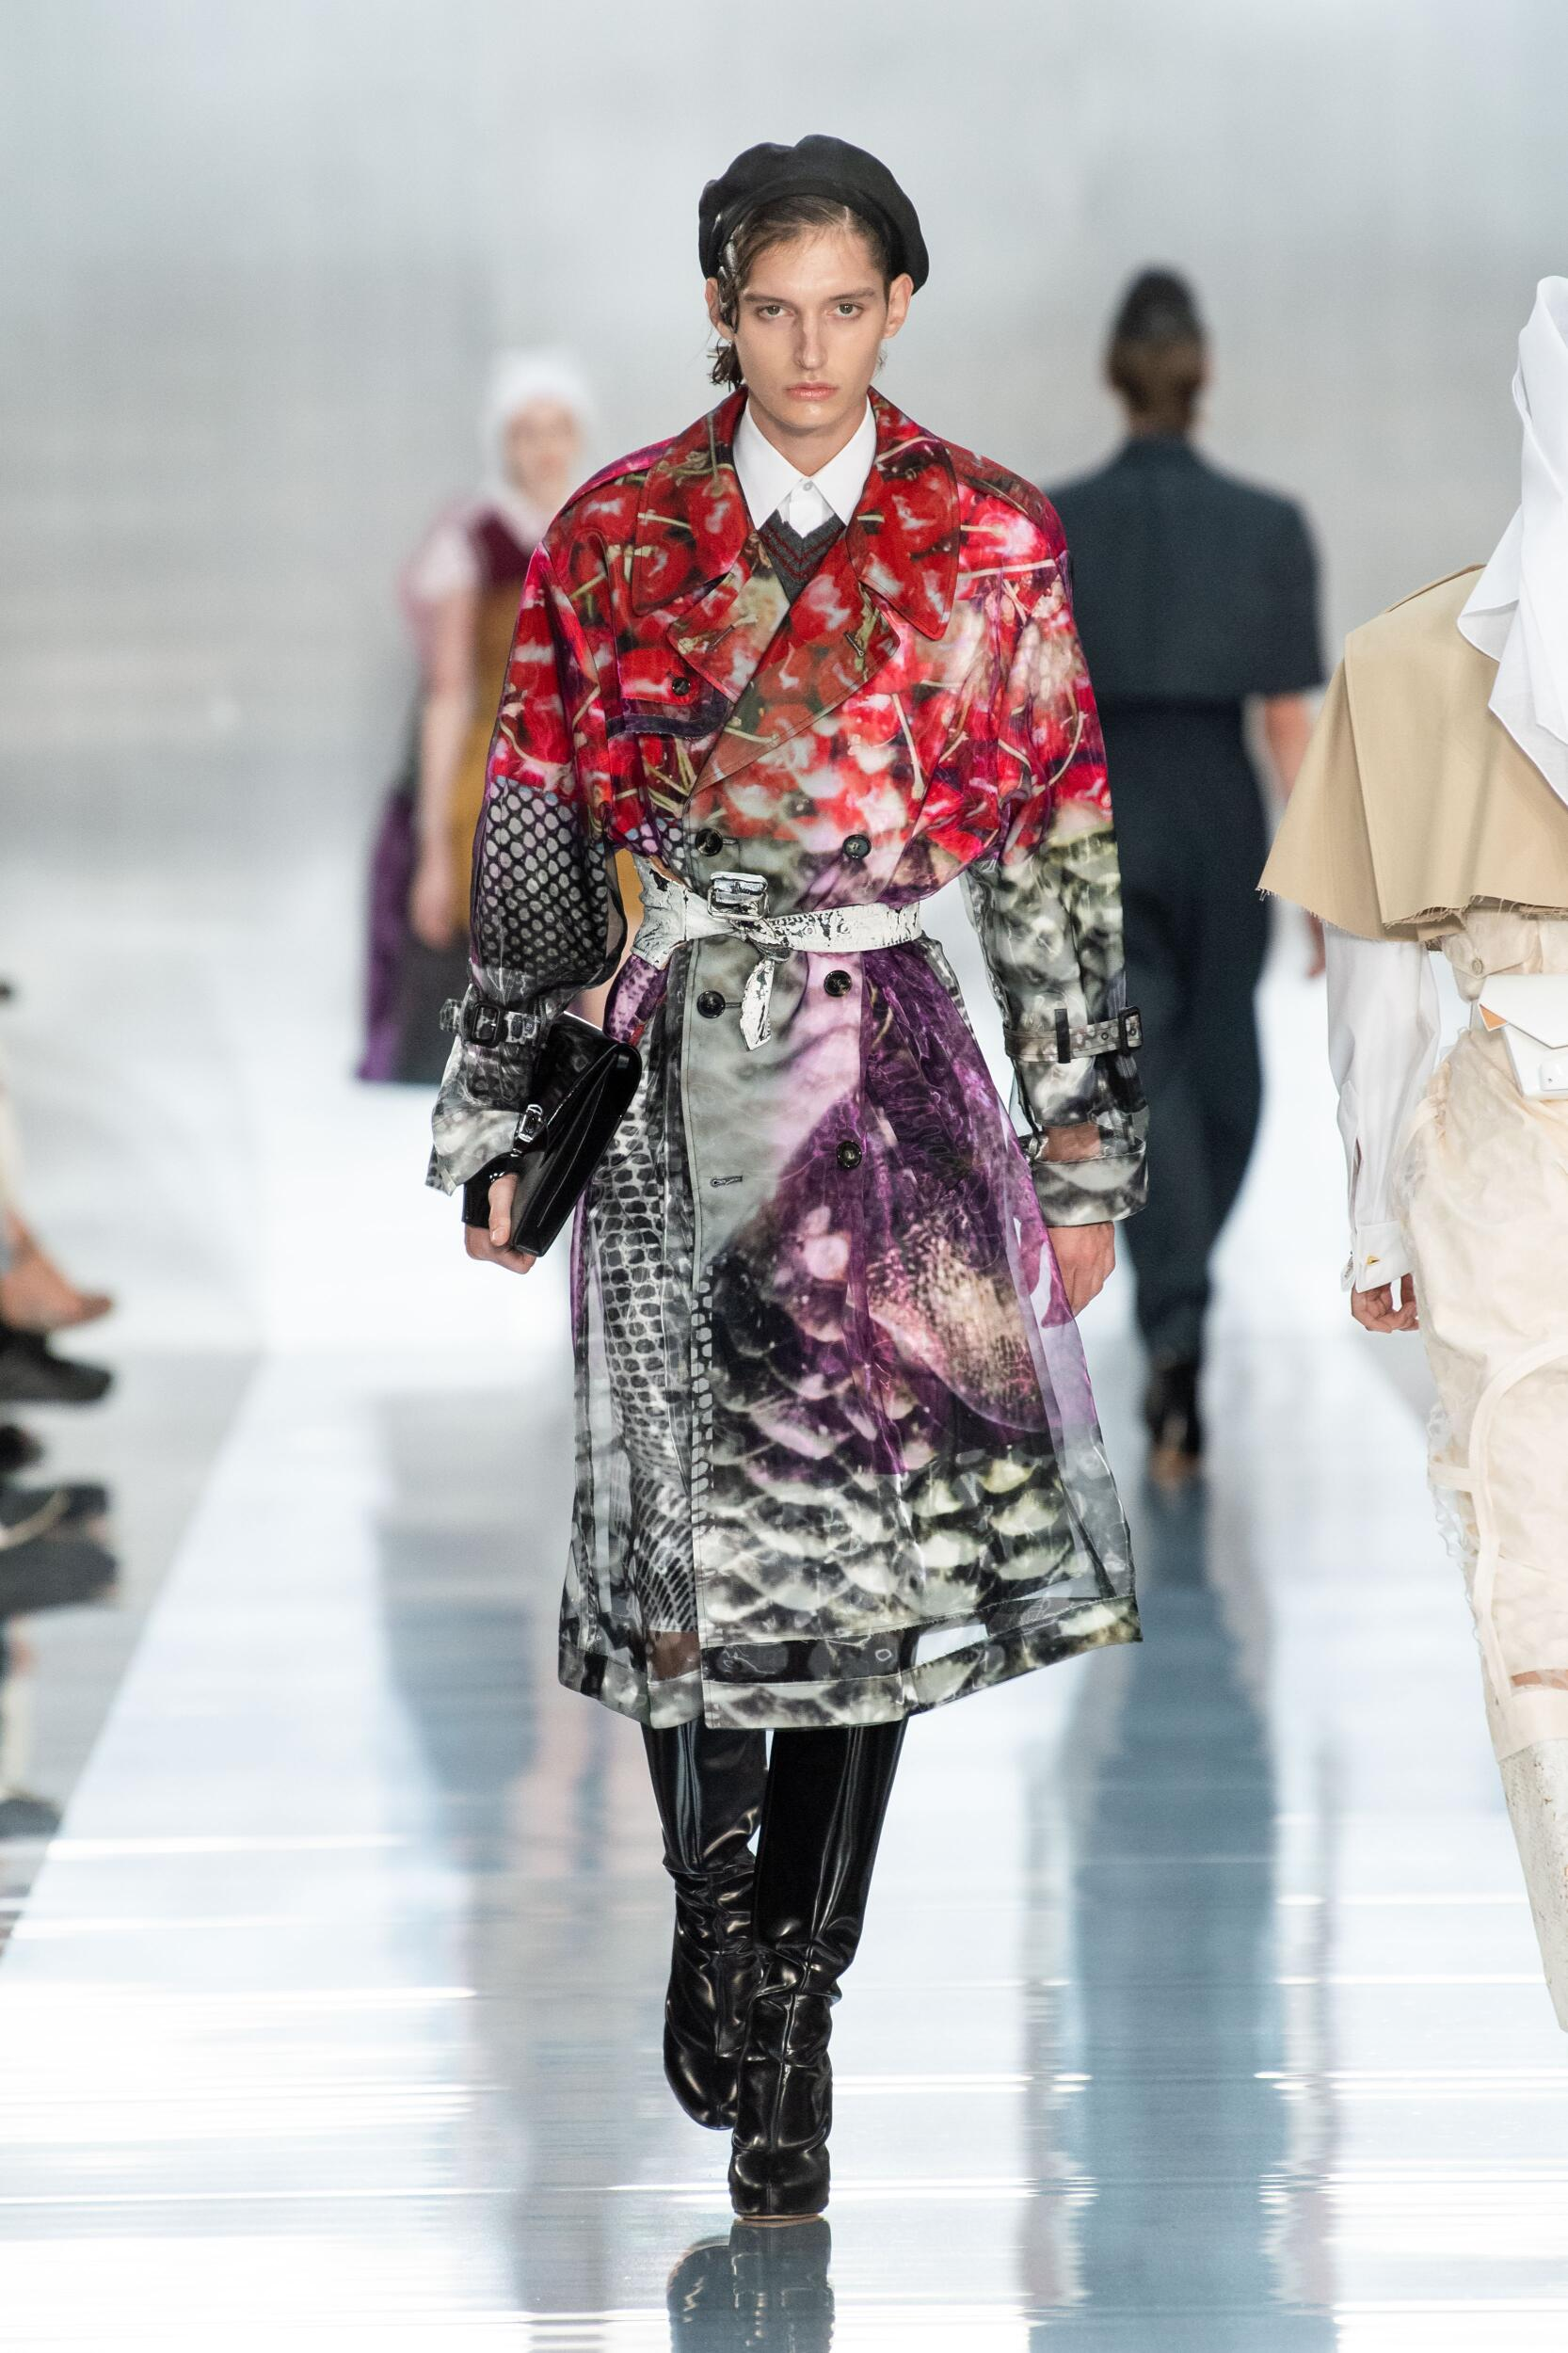 Maison Margiela Summer 2020 Catwalk